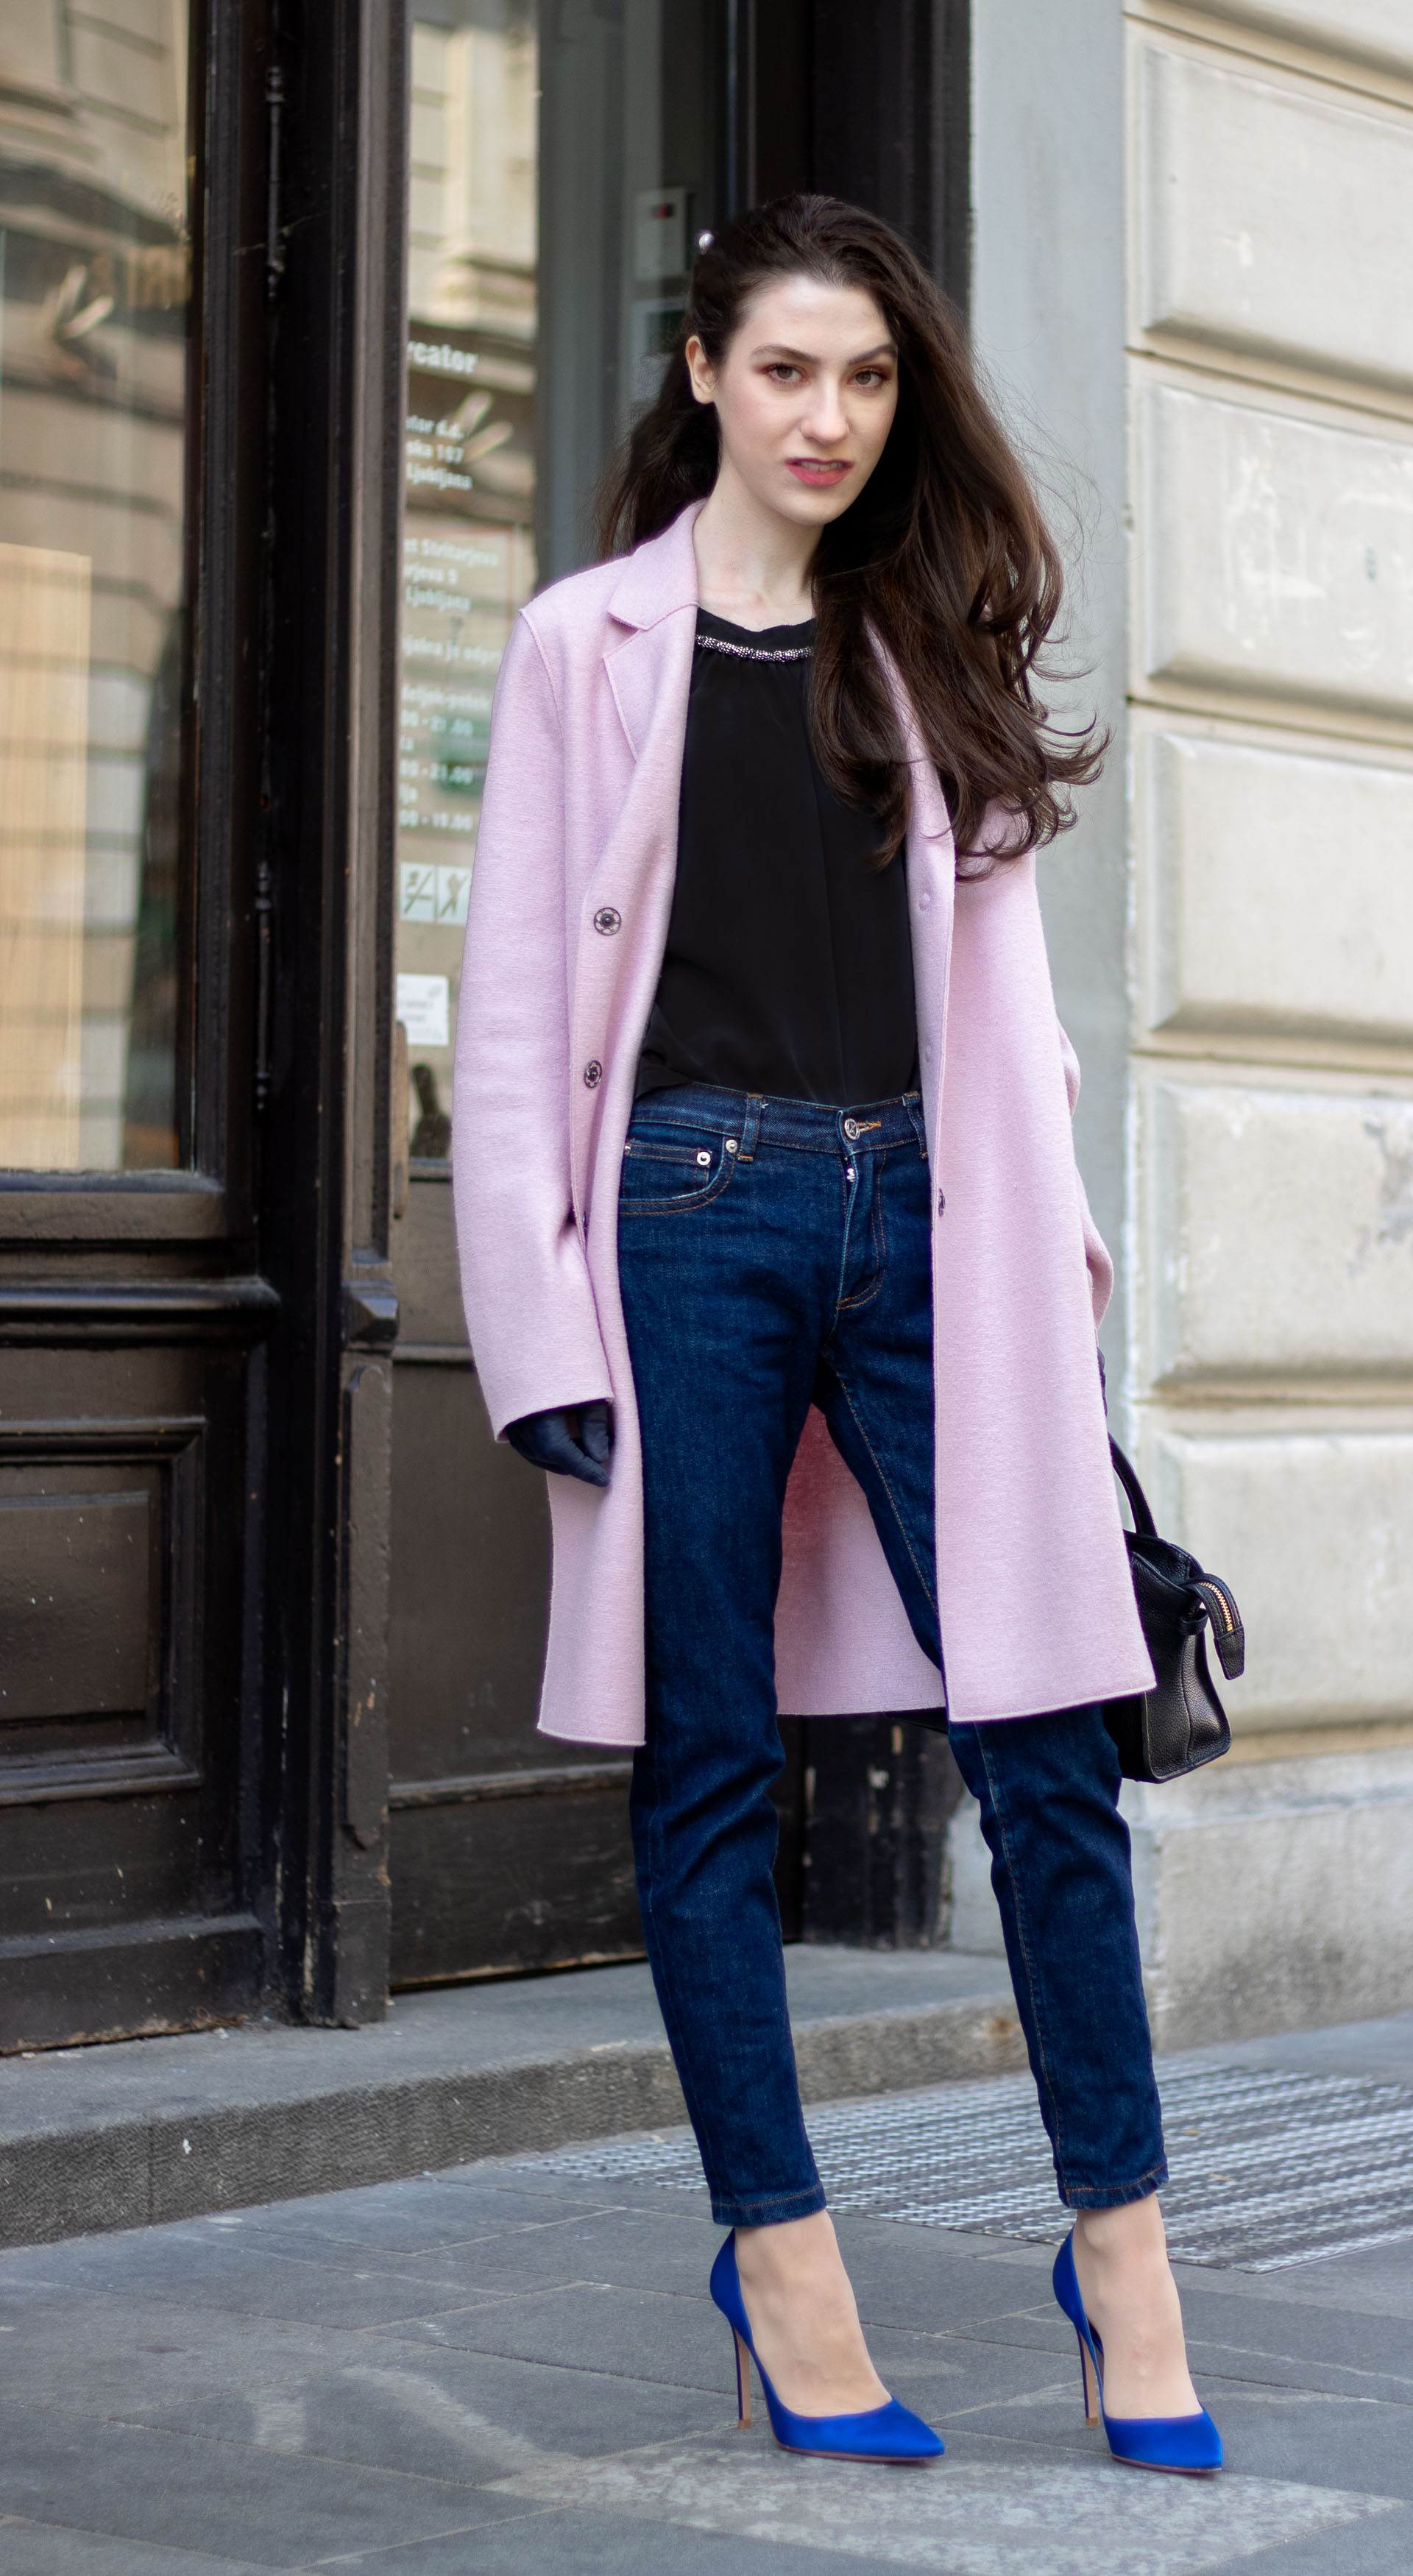 Must follow Fashion Blogger Veronika Lipar of Brunette from Wall Street dressed in oversize pink Harris Wharf London coat A.P.C. Paris dark blue denim jeans Gianvito Rossi blue pumps black top handle bag Forzieri blue leather gloves pearl hairpin standing on the street